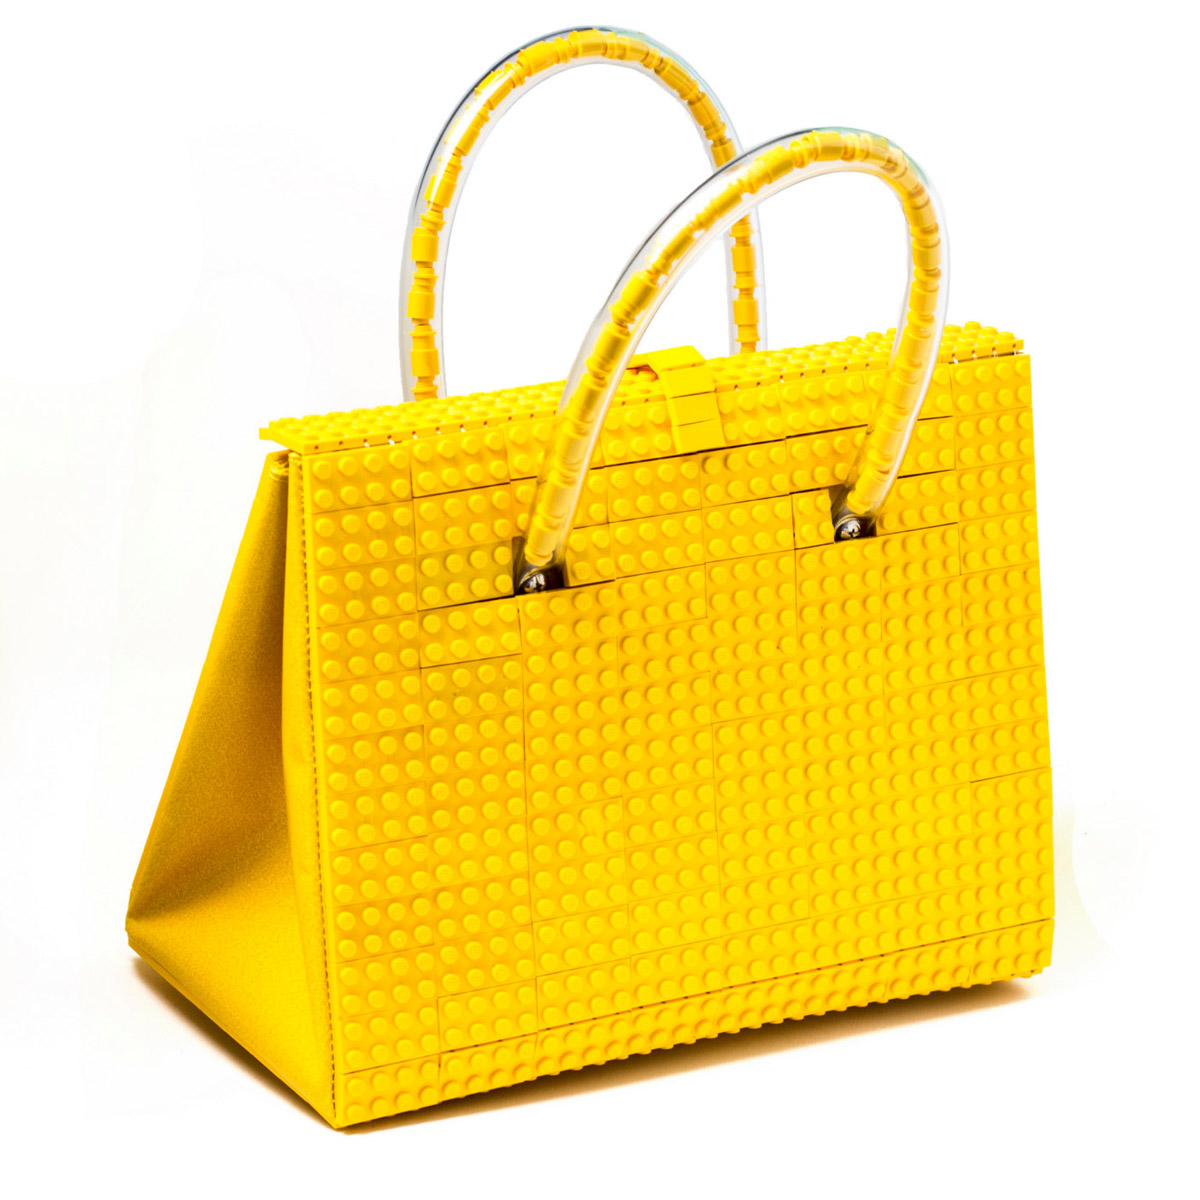 These Purses Aren T Though Ing For 580 To 790 Usd Each Those Looking Some Lego Style But Who Want Spend A Little Less